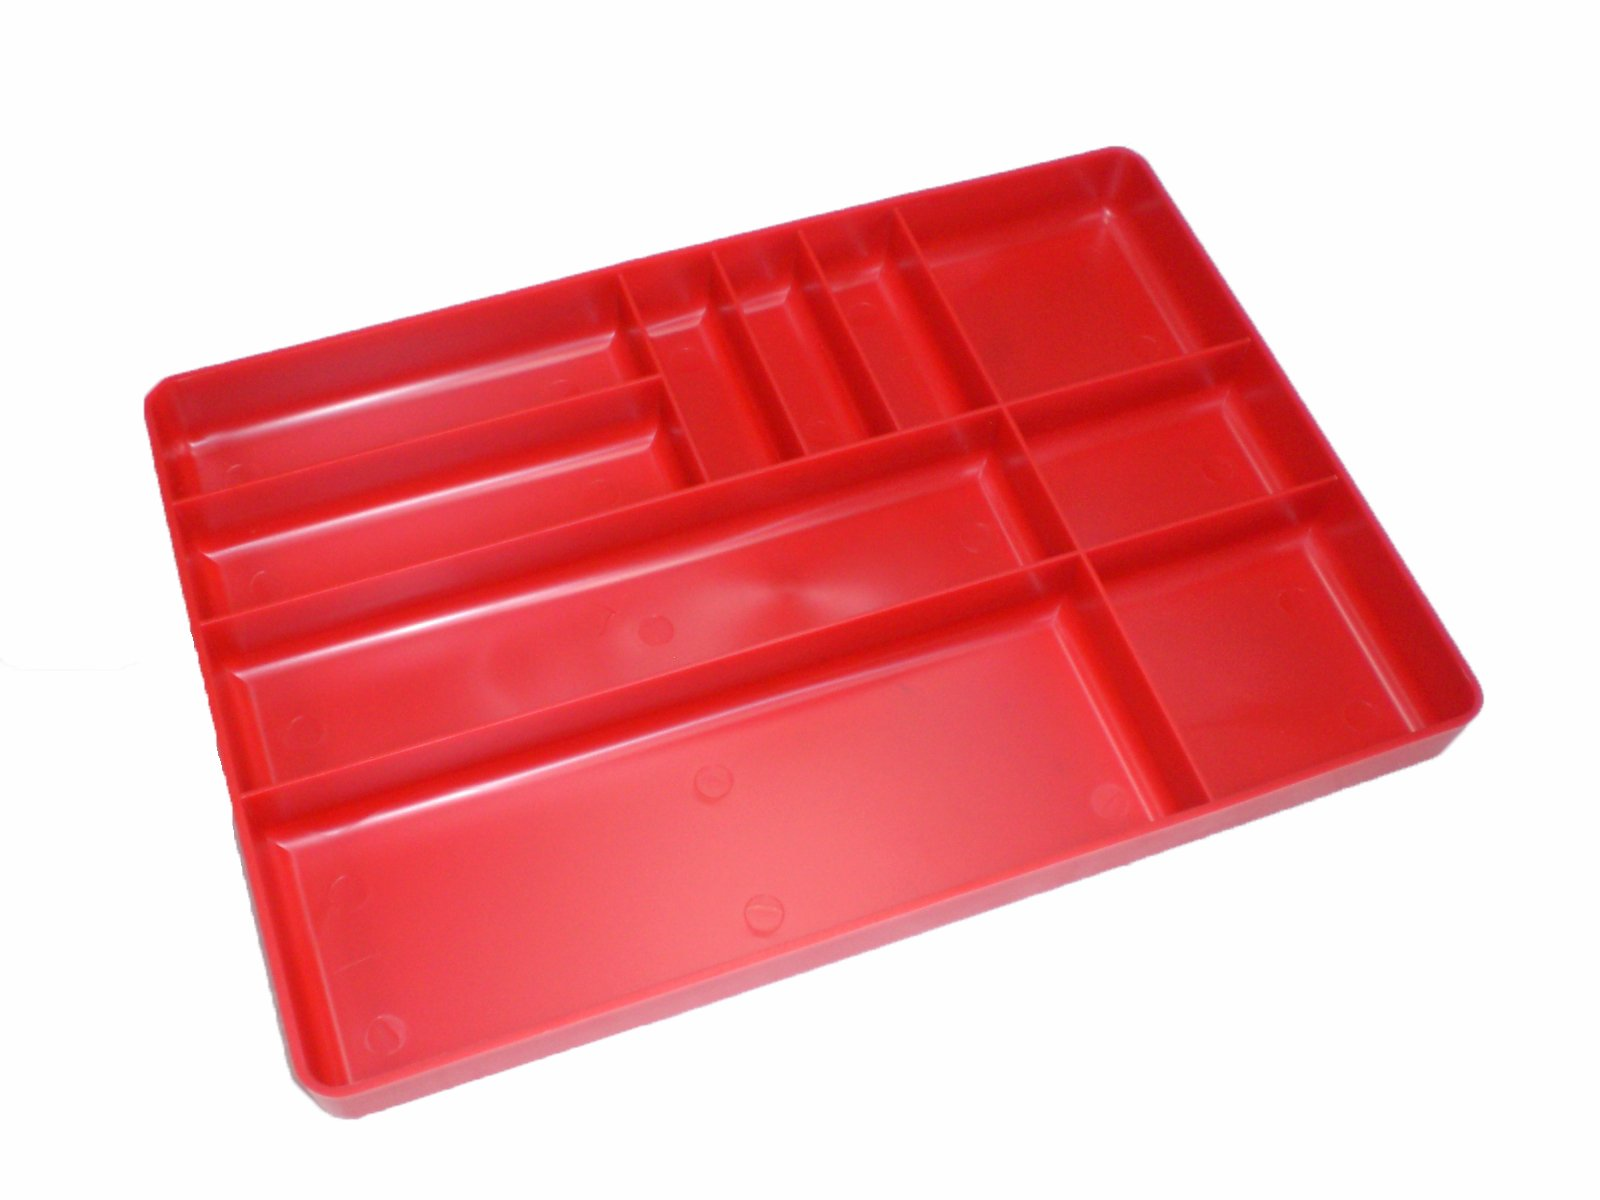 Protoco 6020 Tool Box Organization Plastic Tray with 10 Compartment, 16-Inch x 11-Inch x 1.5-Inch, Red